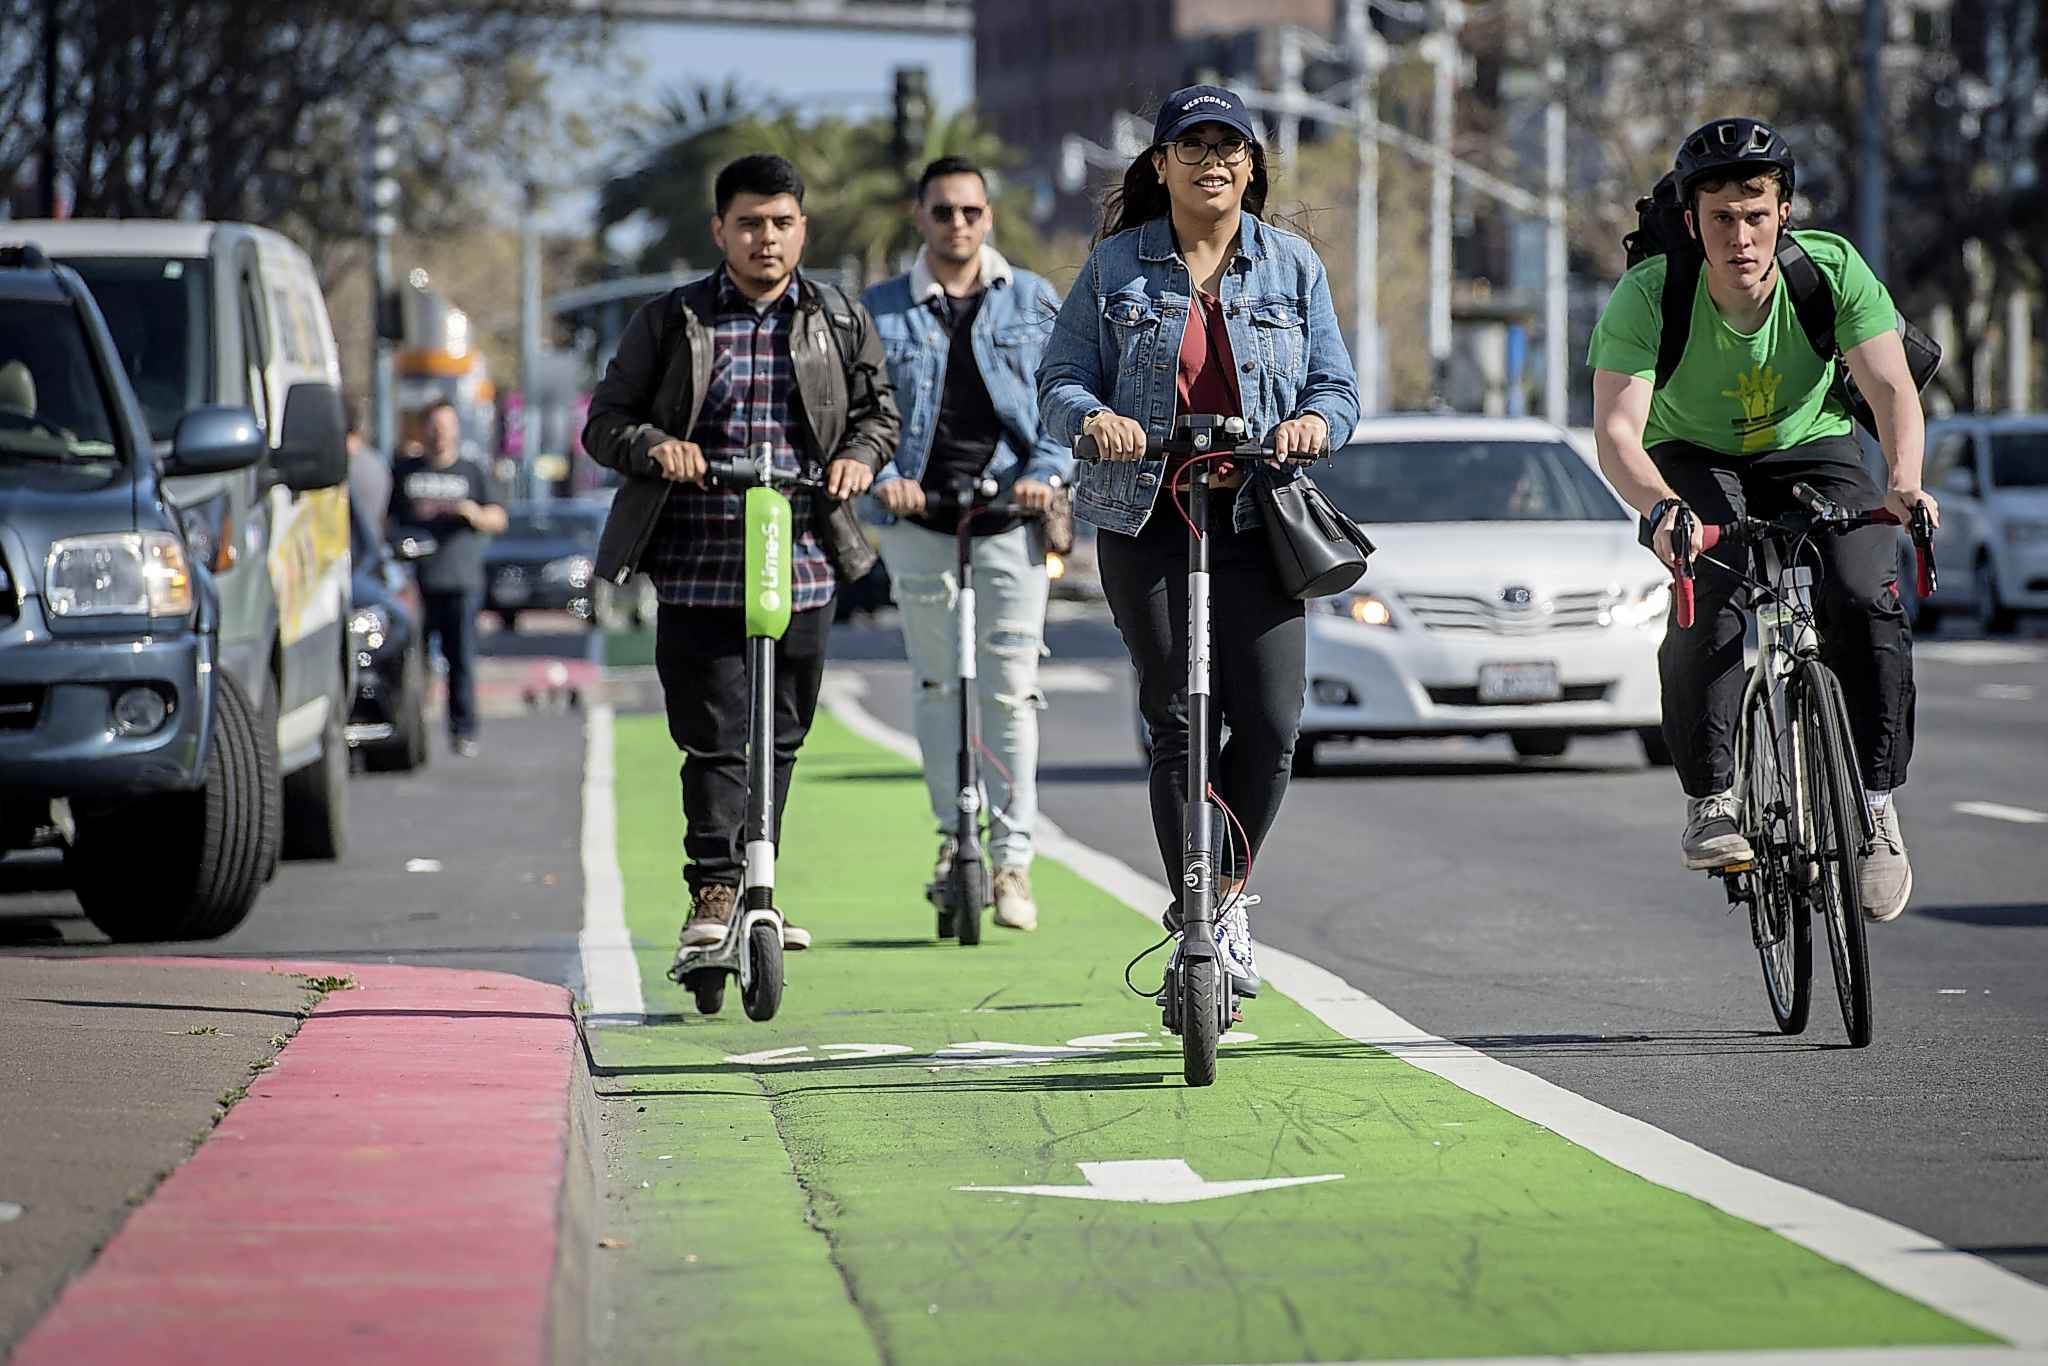 People ride LimeBike and Bird Rides shared electric scooters in San Francisco. (Bloomberg photo by David Paul Morris)